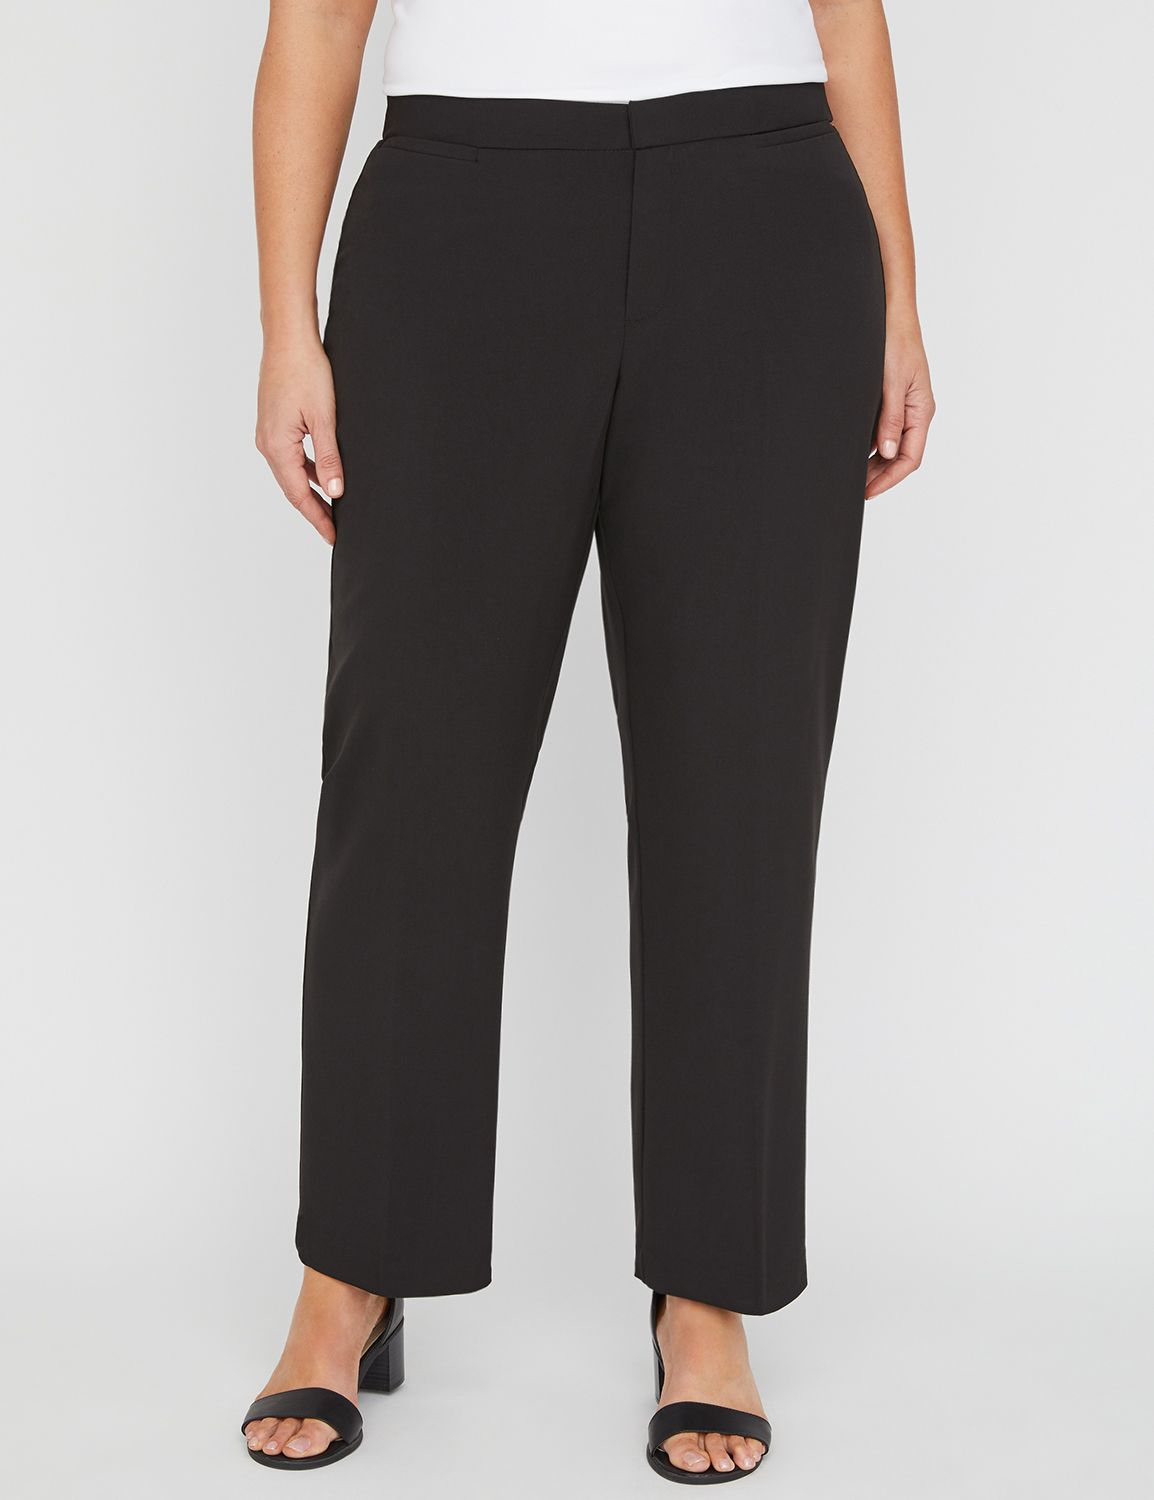 Right Fit Pant (Moderately Curvy) Right Fit Pant (Moderately Curvy) MP-300009885